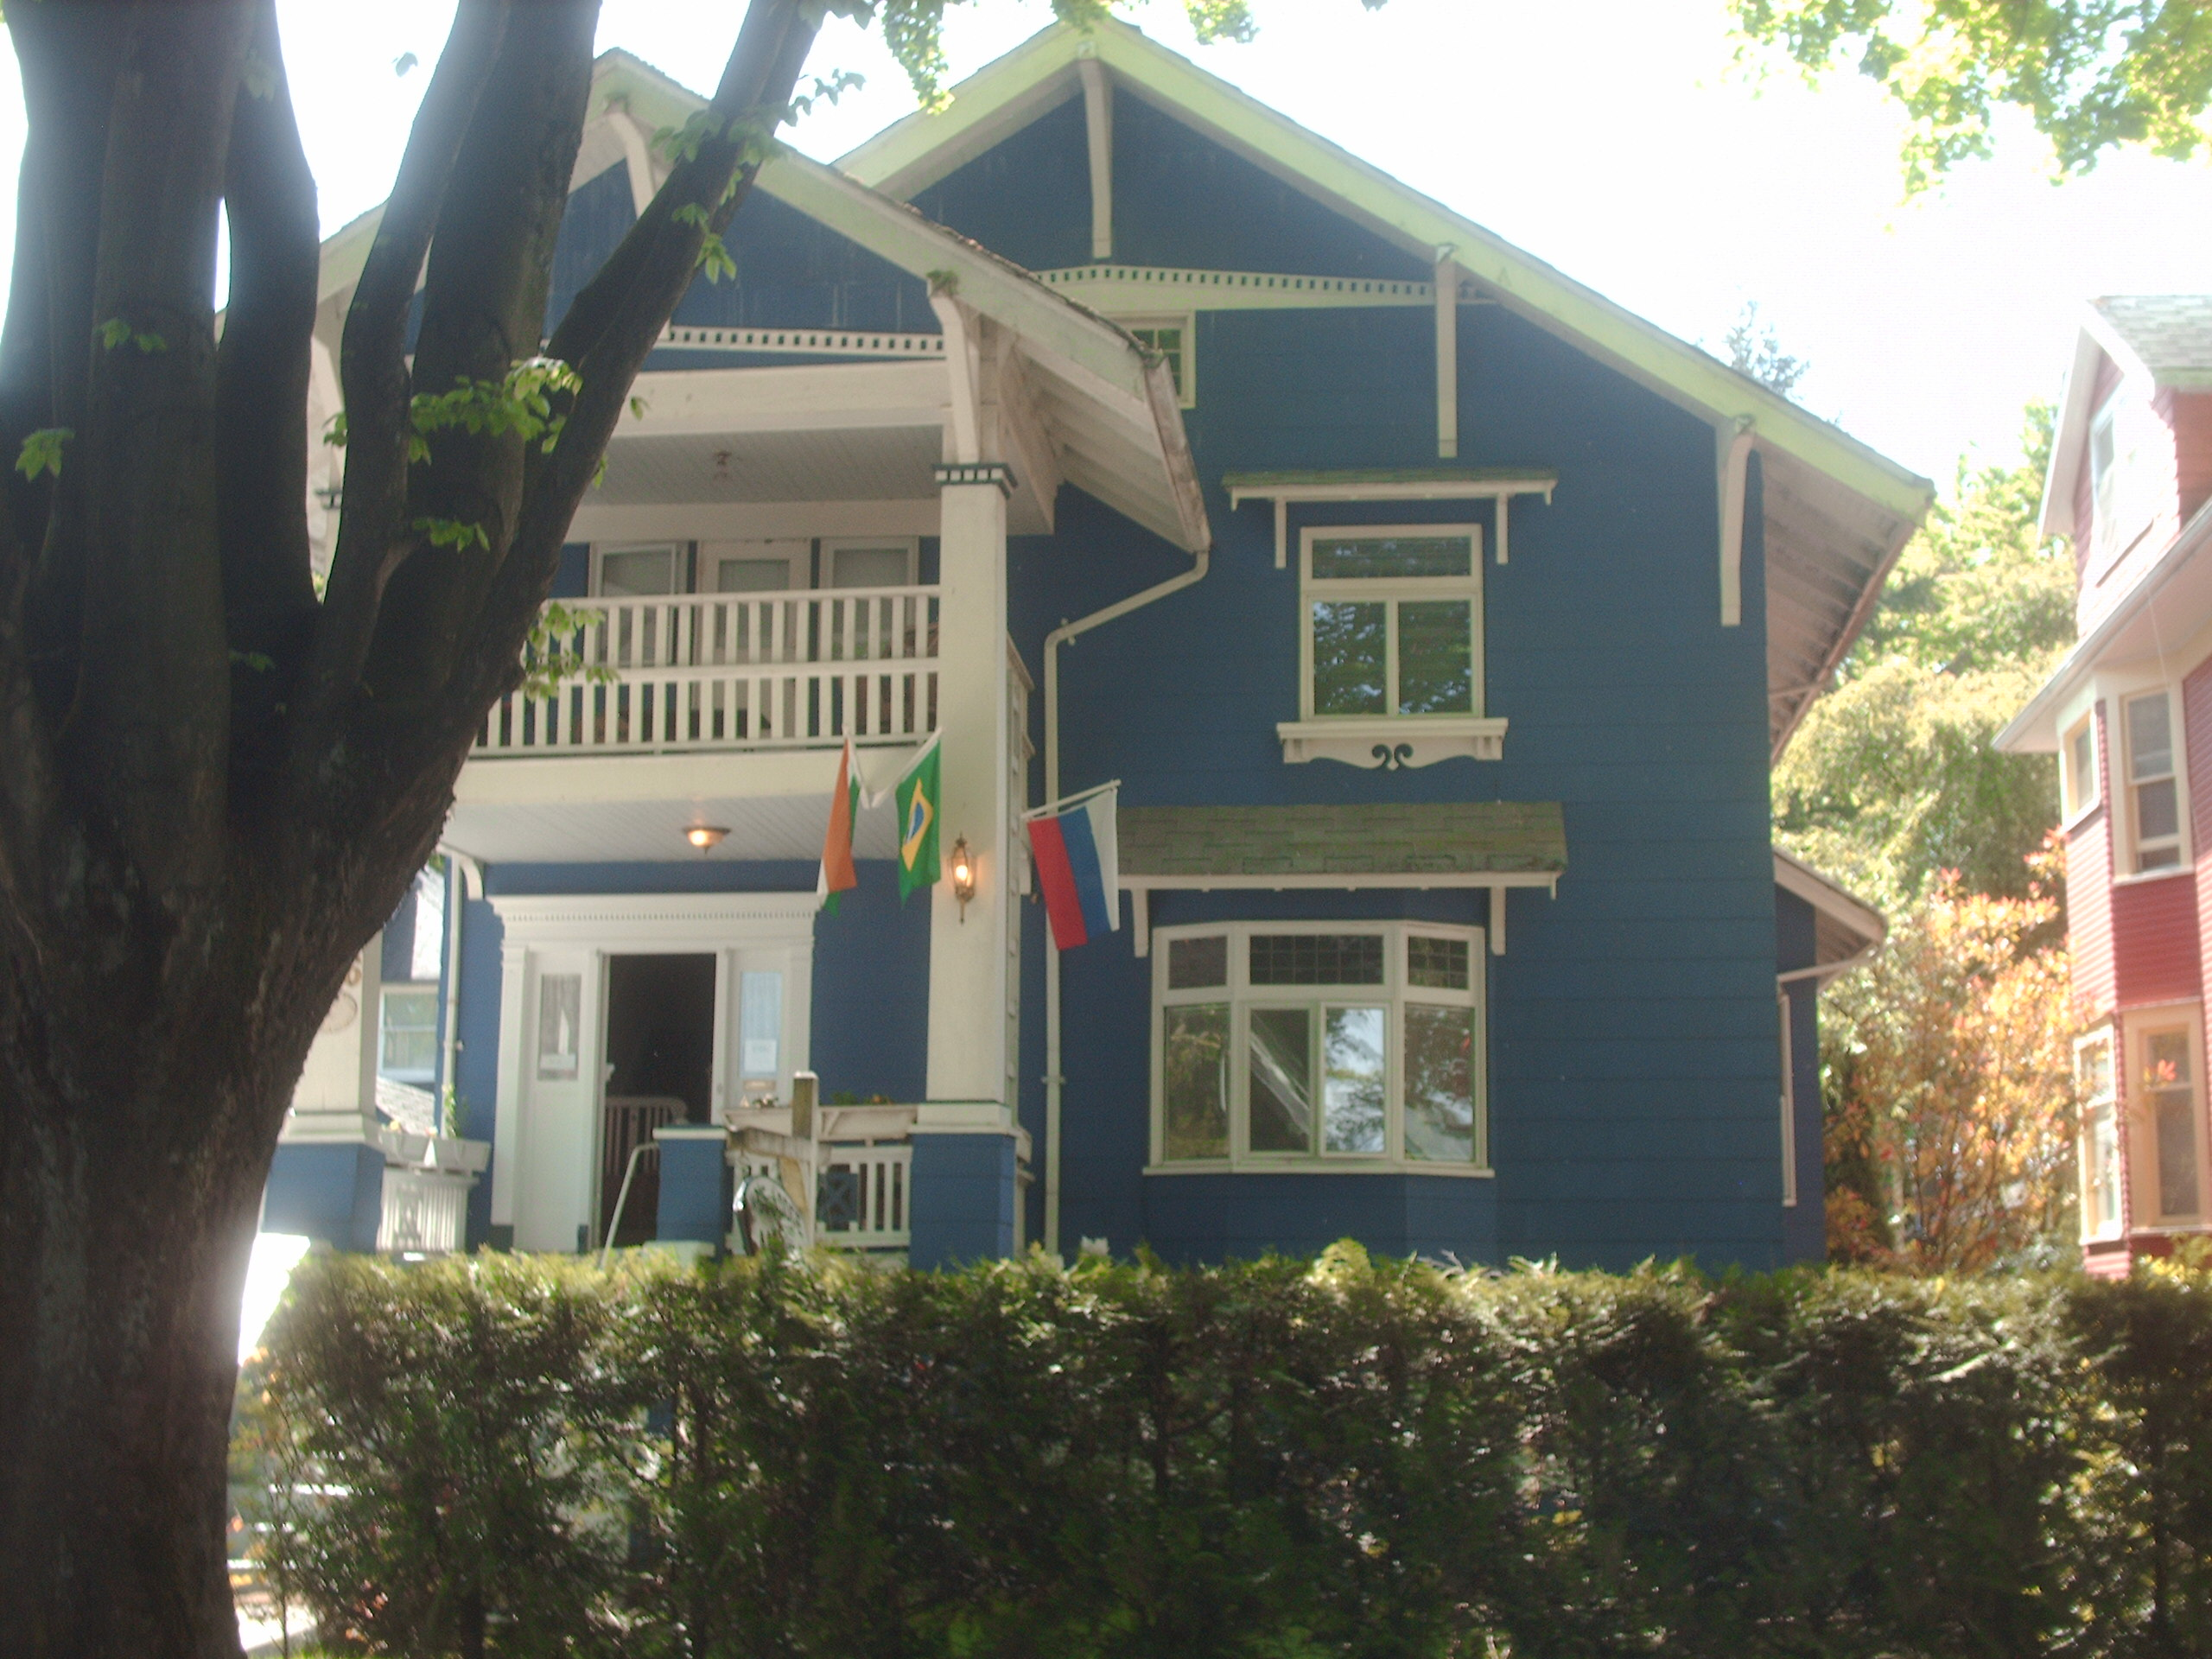 Cambie Lodge Bed & Breakfast